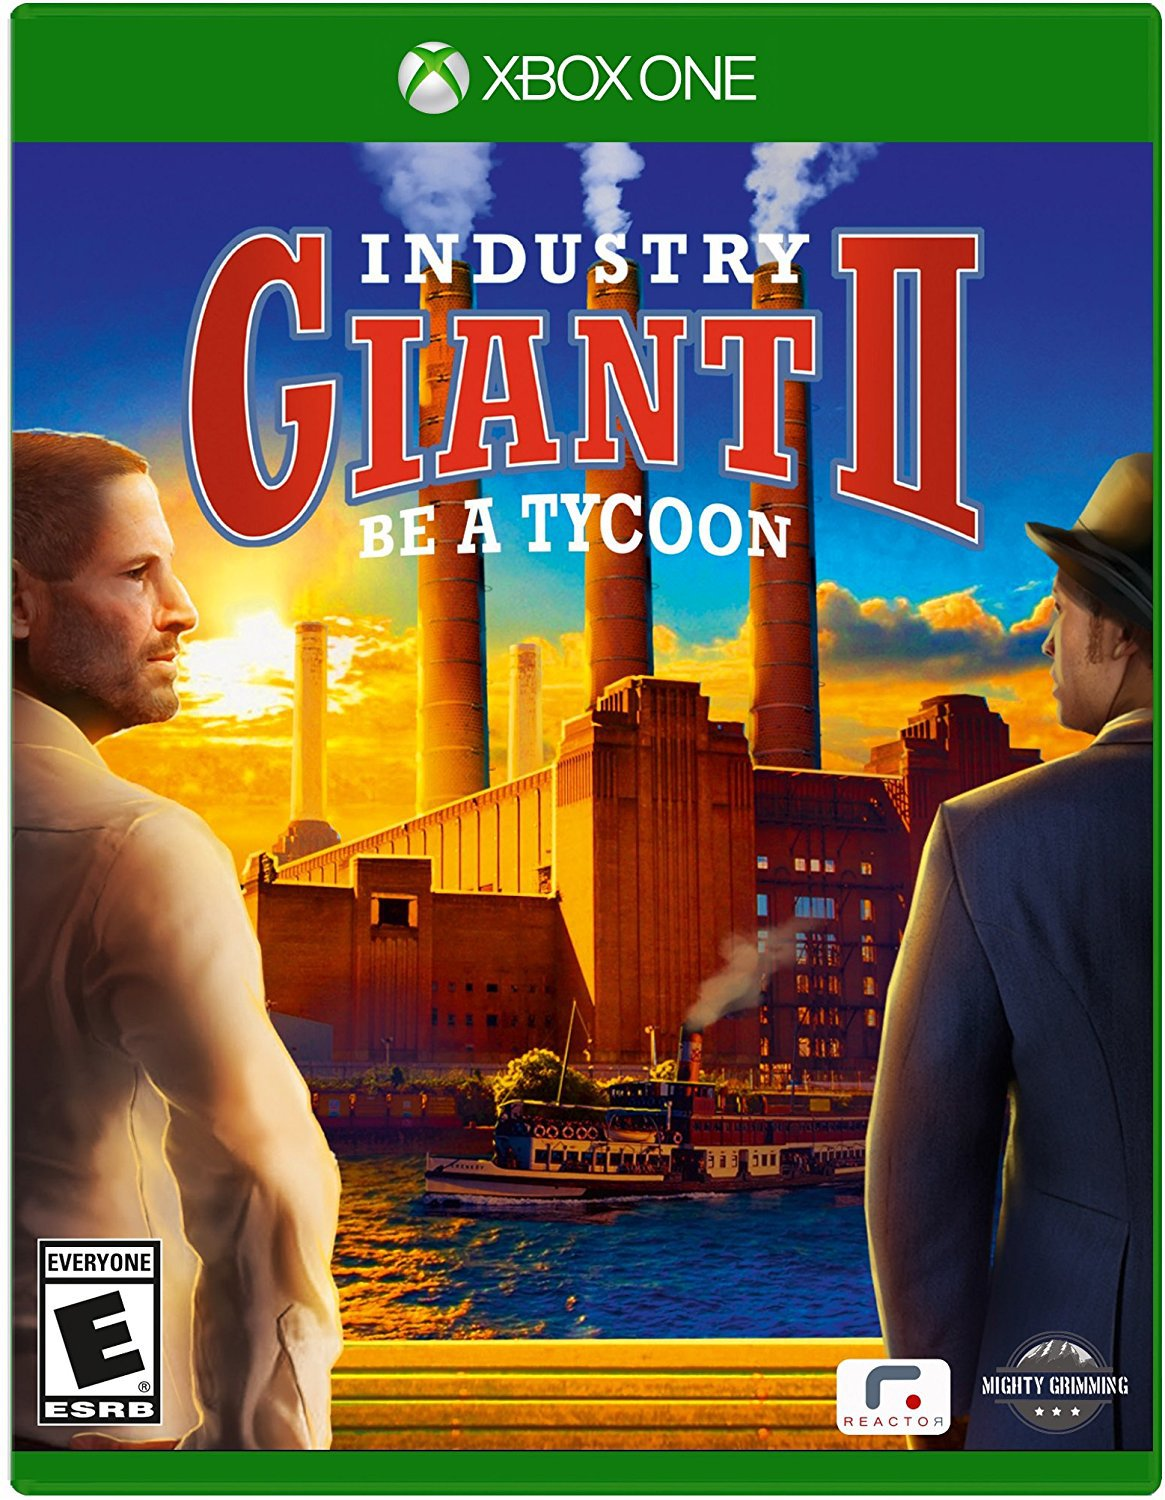 Industry Giant 2: Be A Tycoon